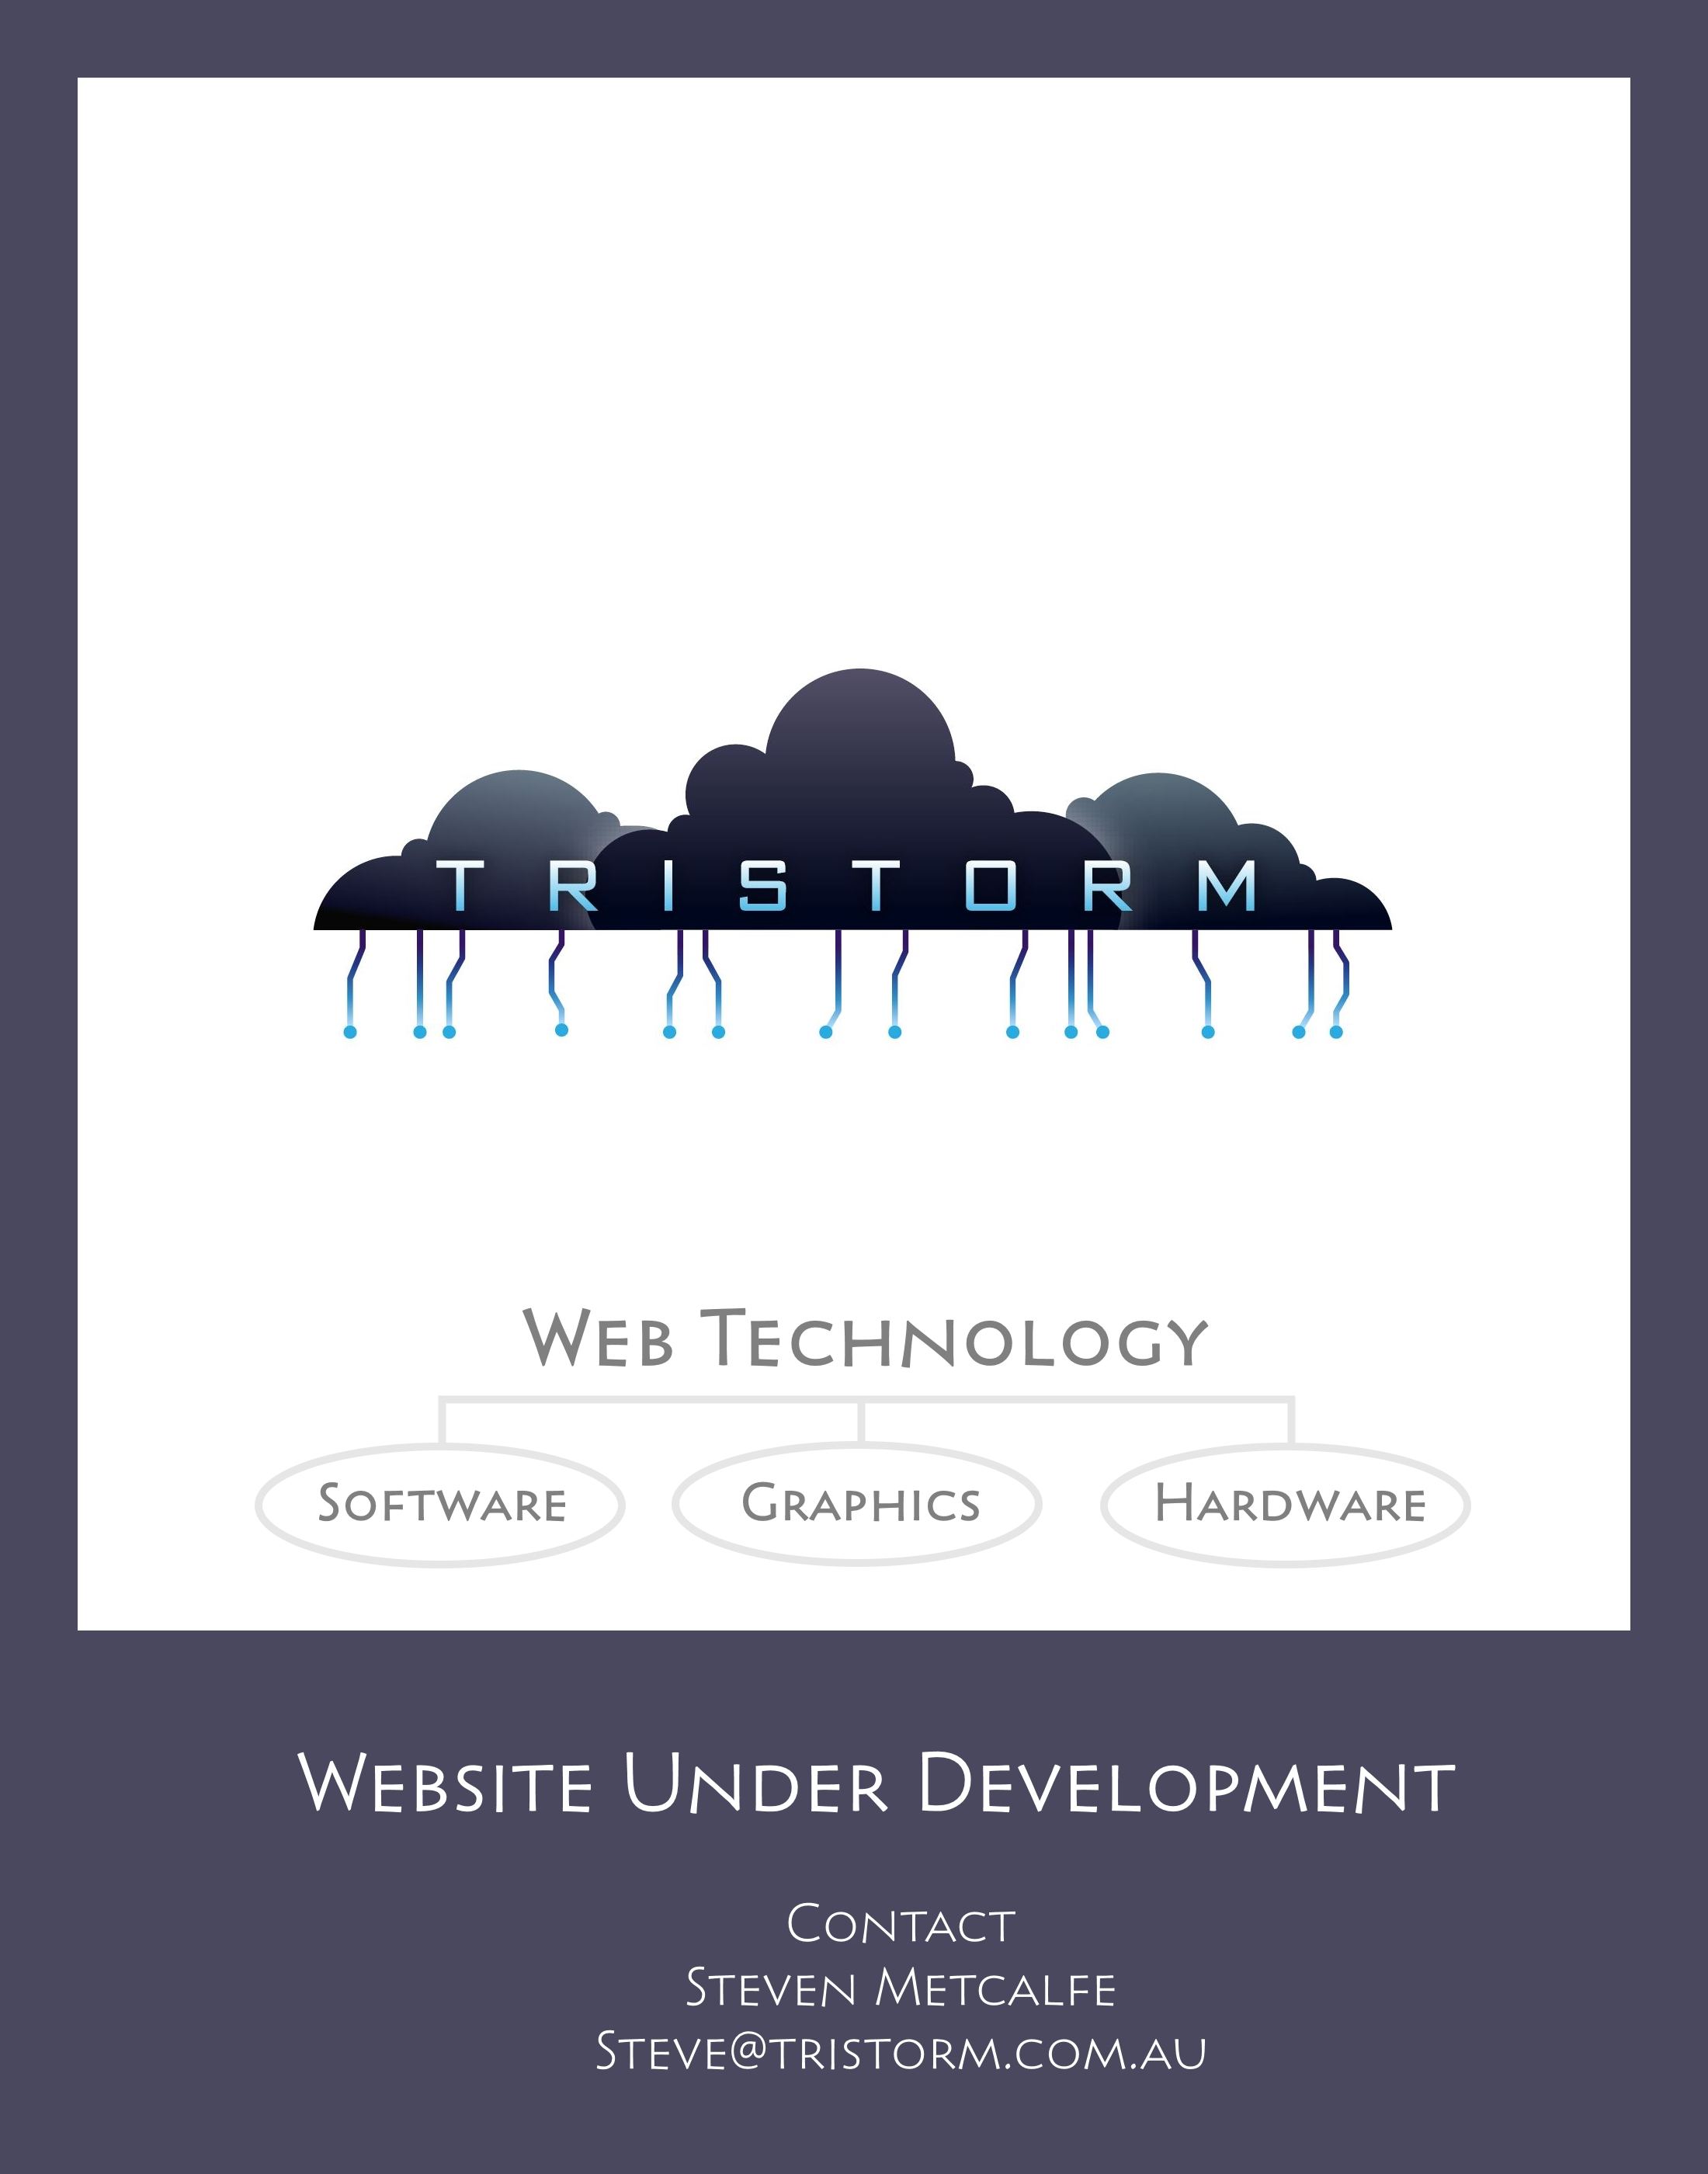 Tristorm - Web Technology: Site Under Development